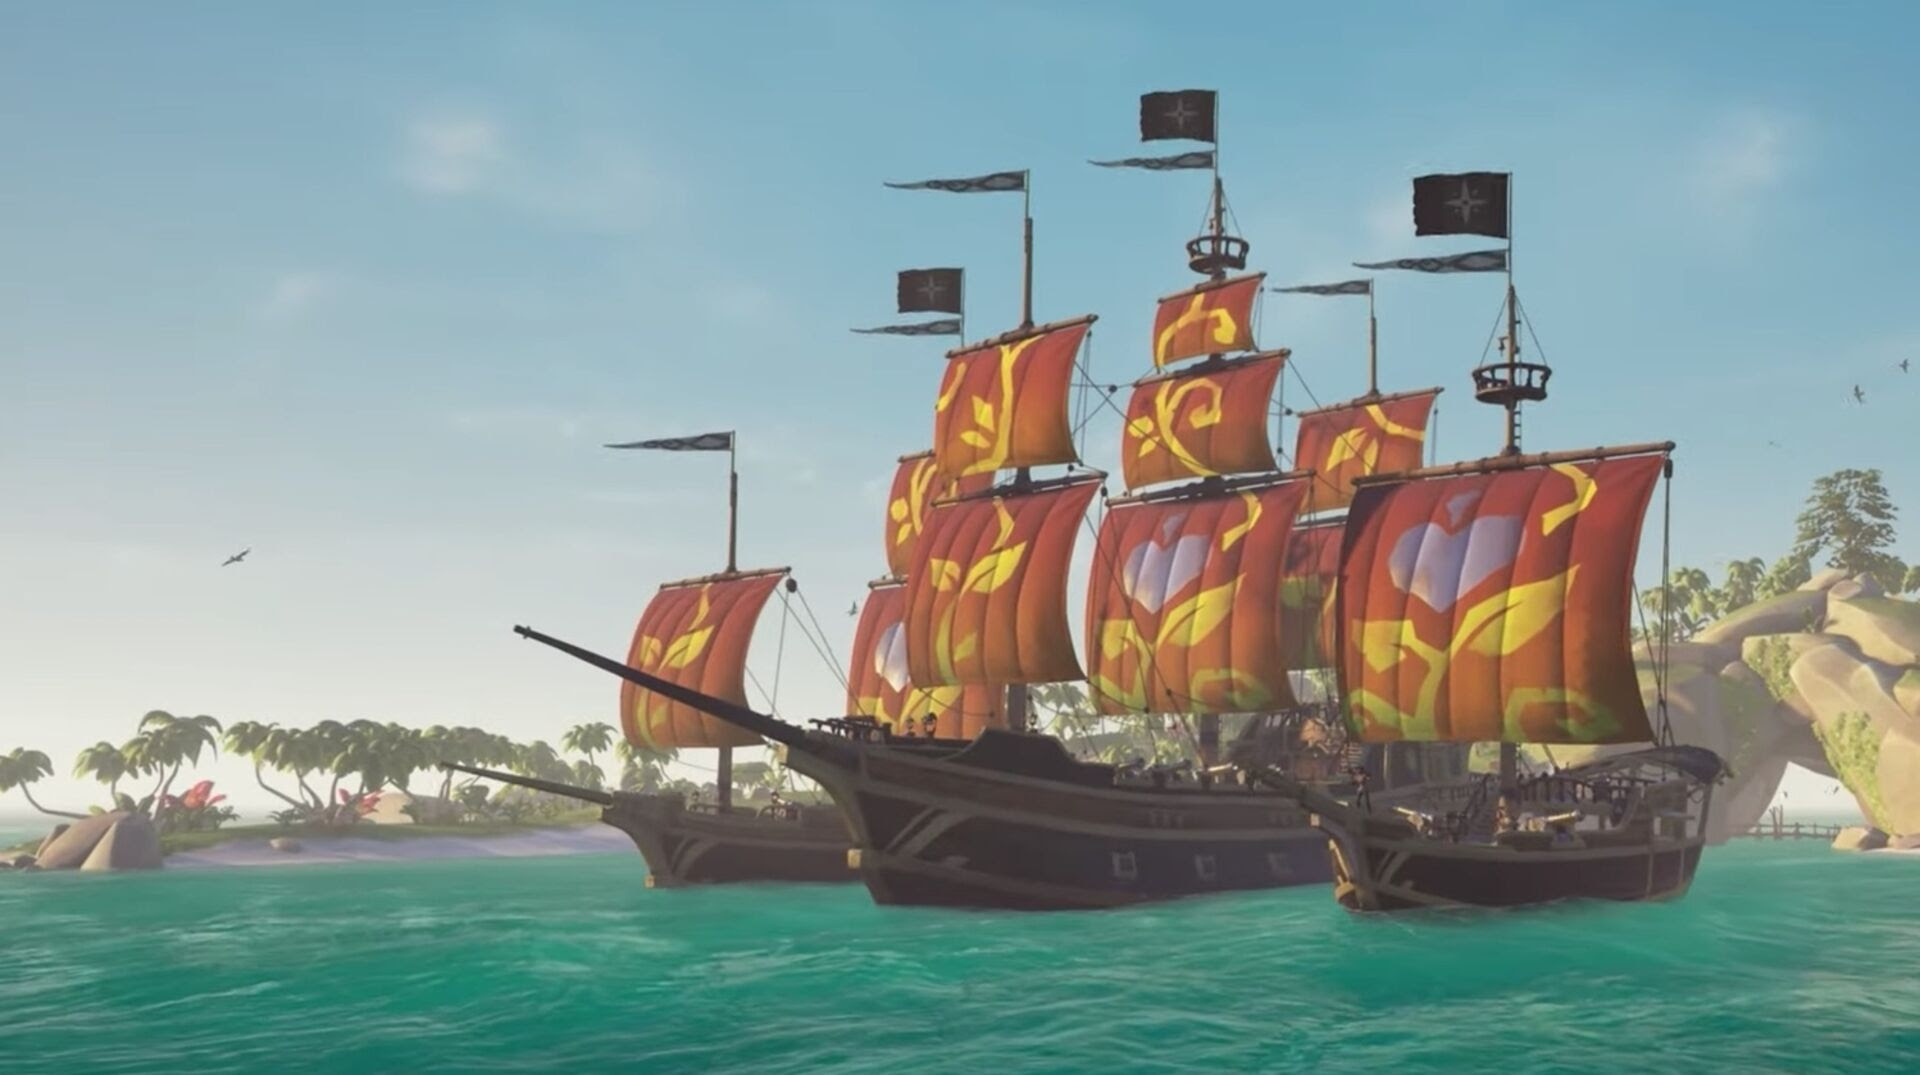 Sea of Thieves' latest charity sails are raising money for No Kid Hungry